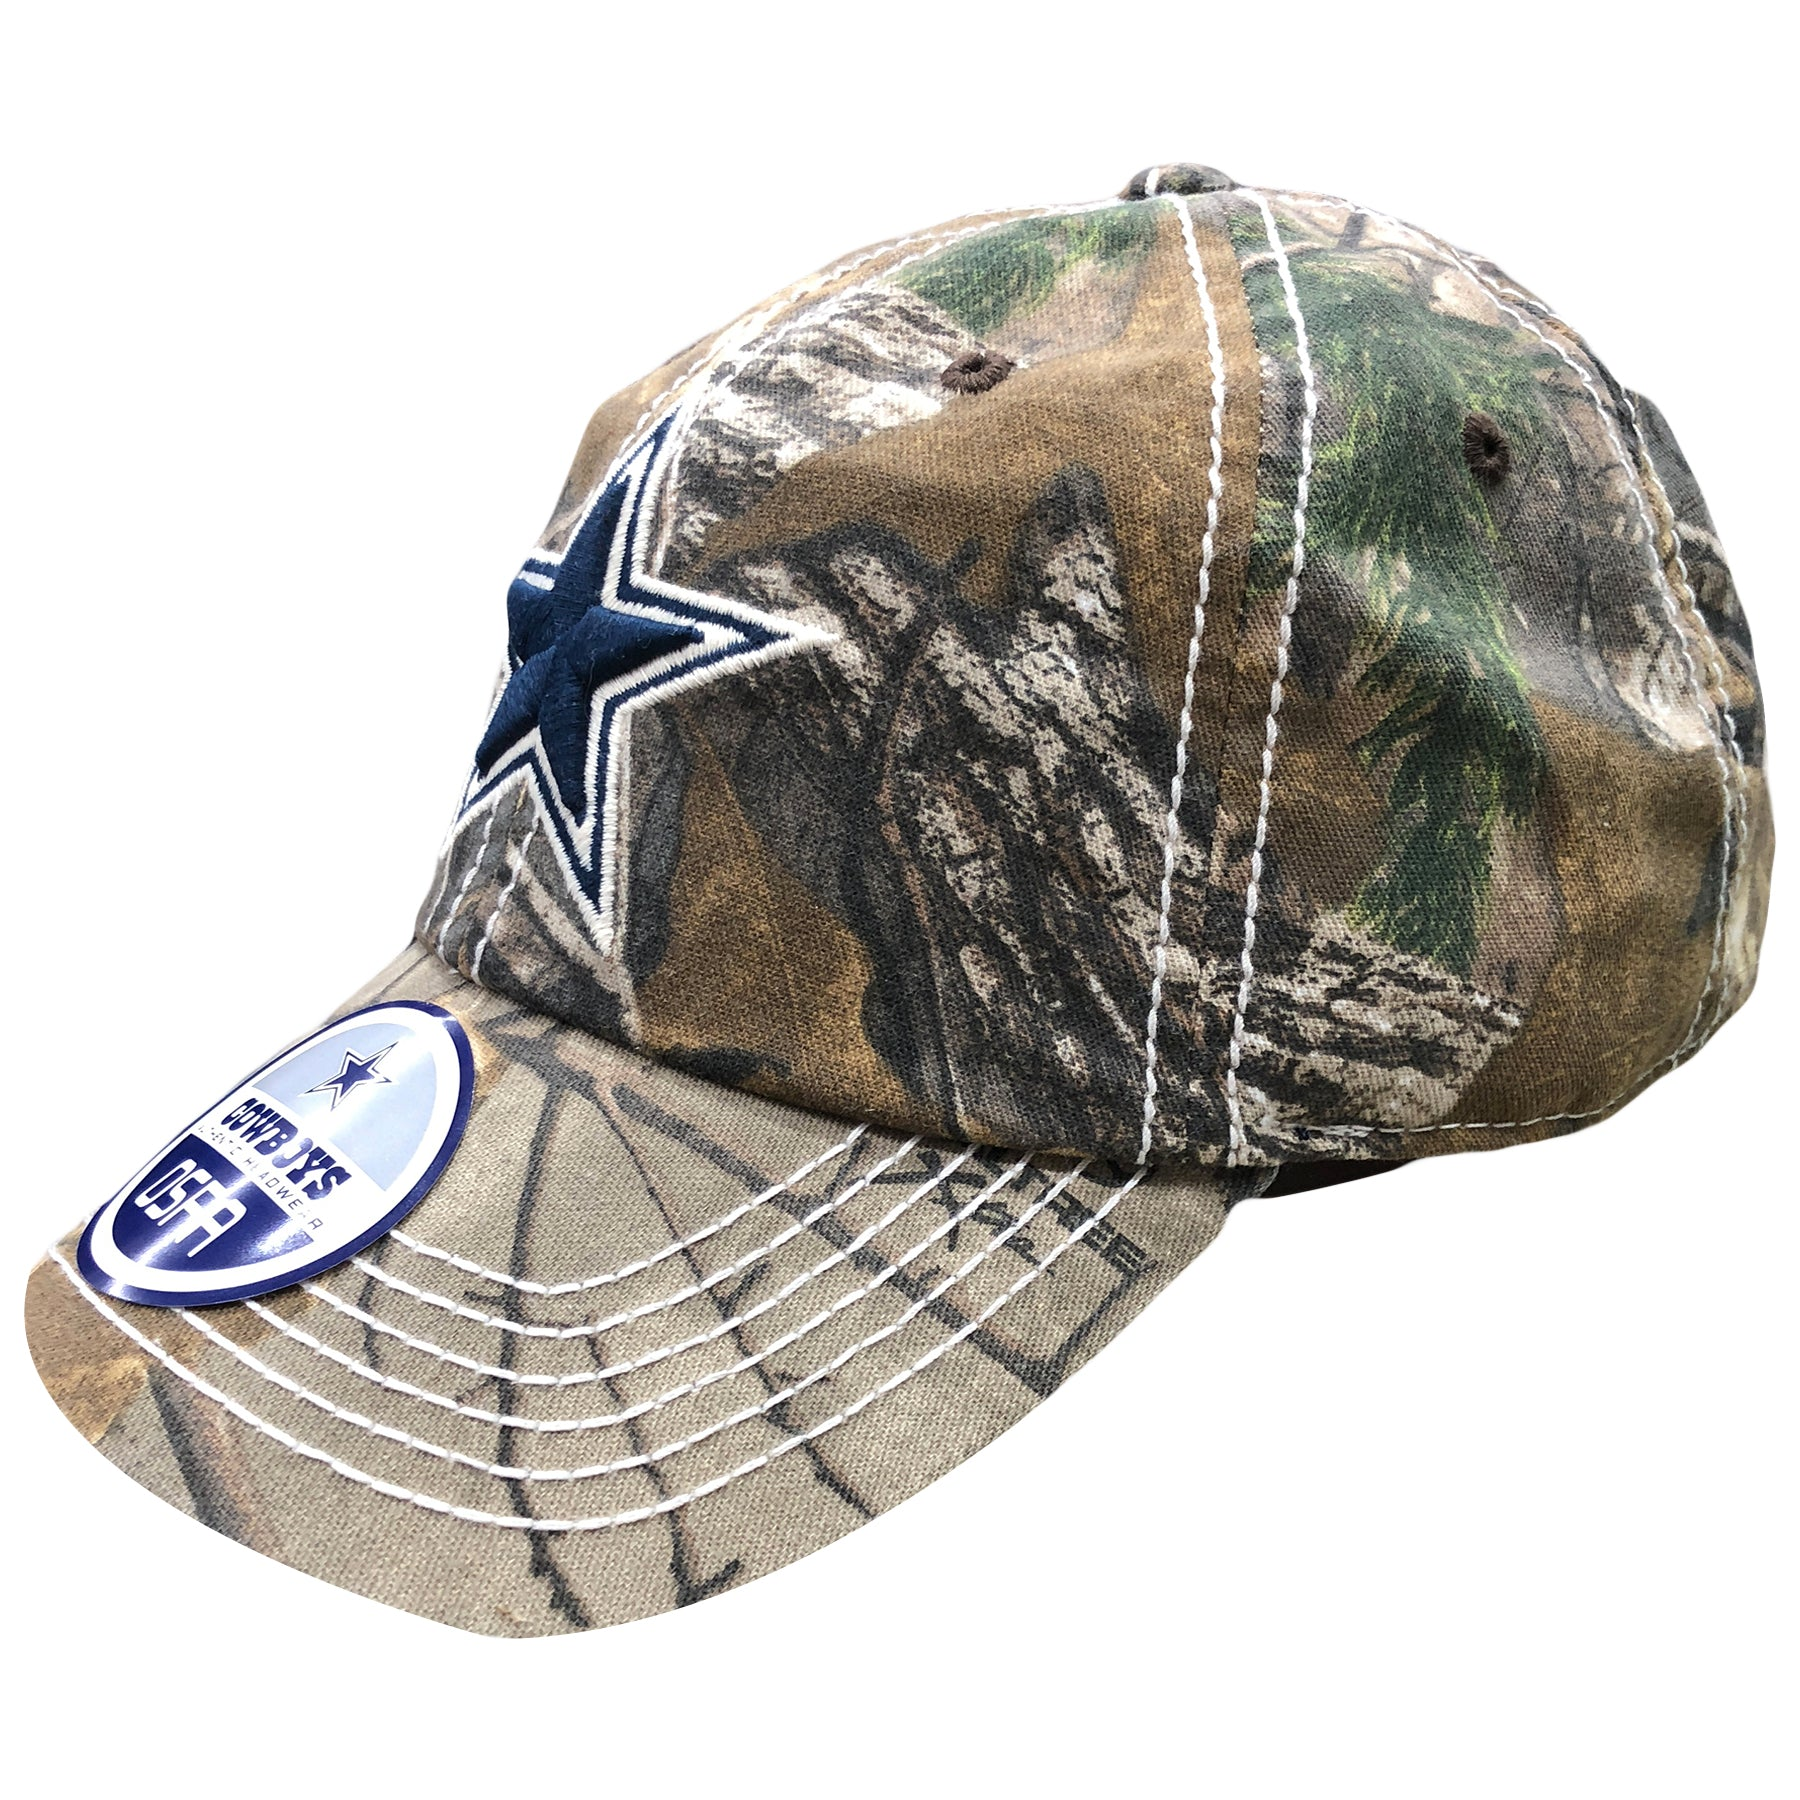 517d32534 ... logo embroidered  The Dallas Cowboys realtree adjustable baseball cap  has a soft crown and a bent brim ...